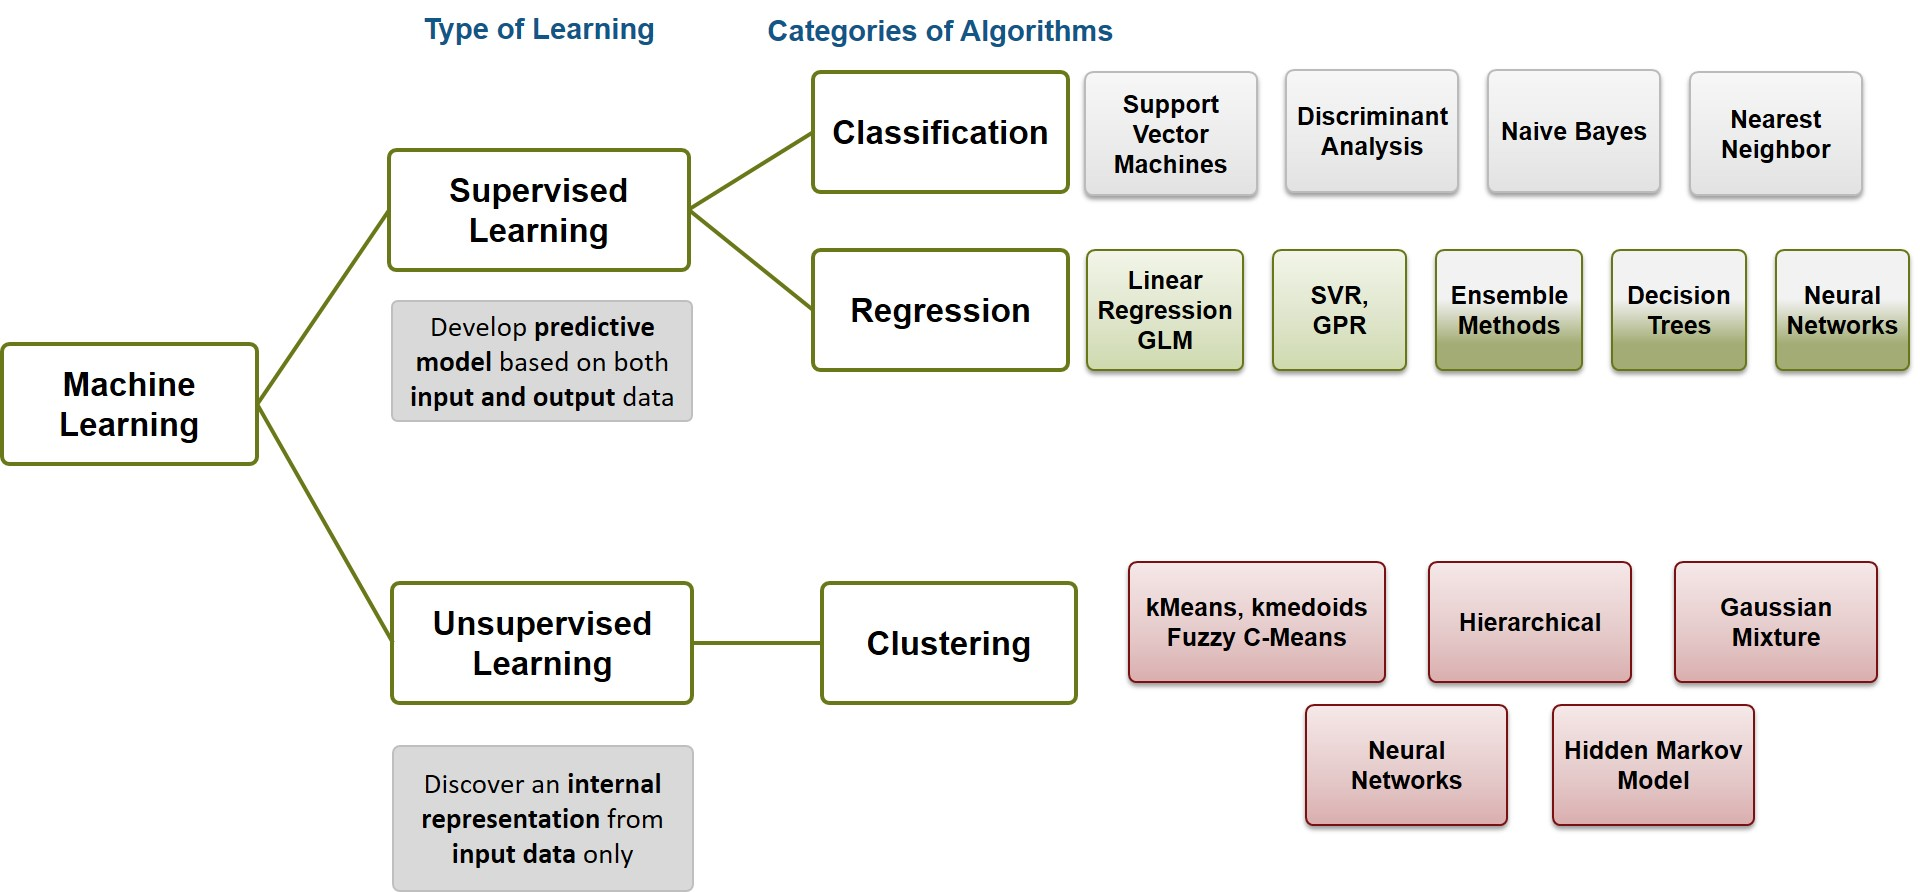 [Figure 1 | An overview of different types of machine learning methods and categories of algorithms.]